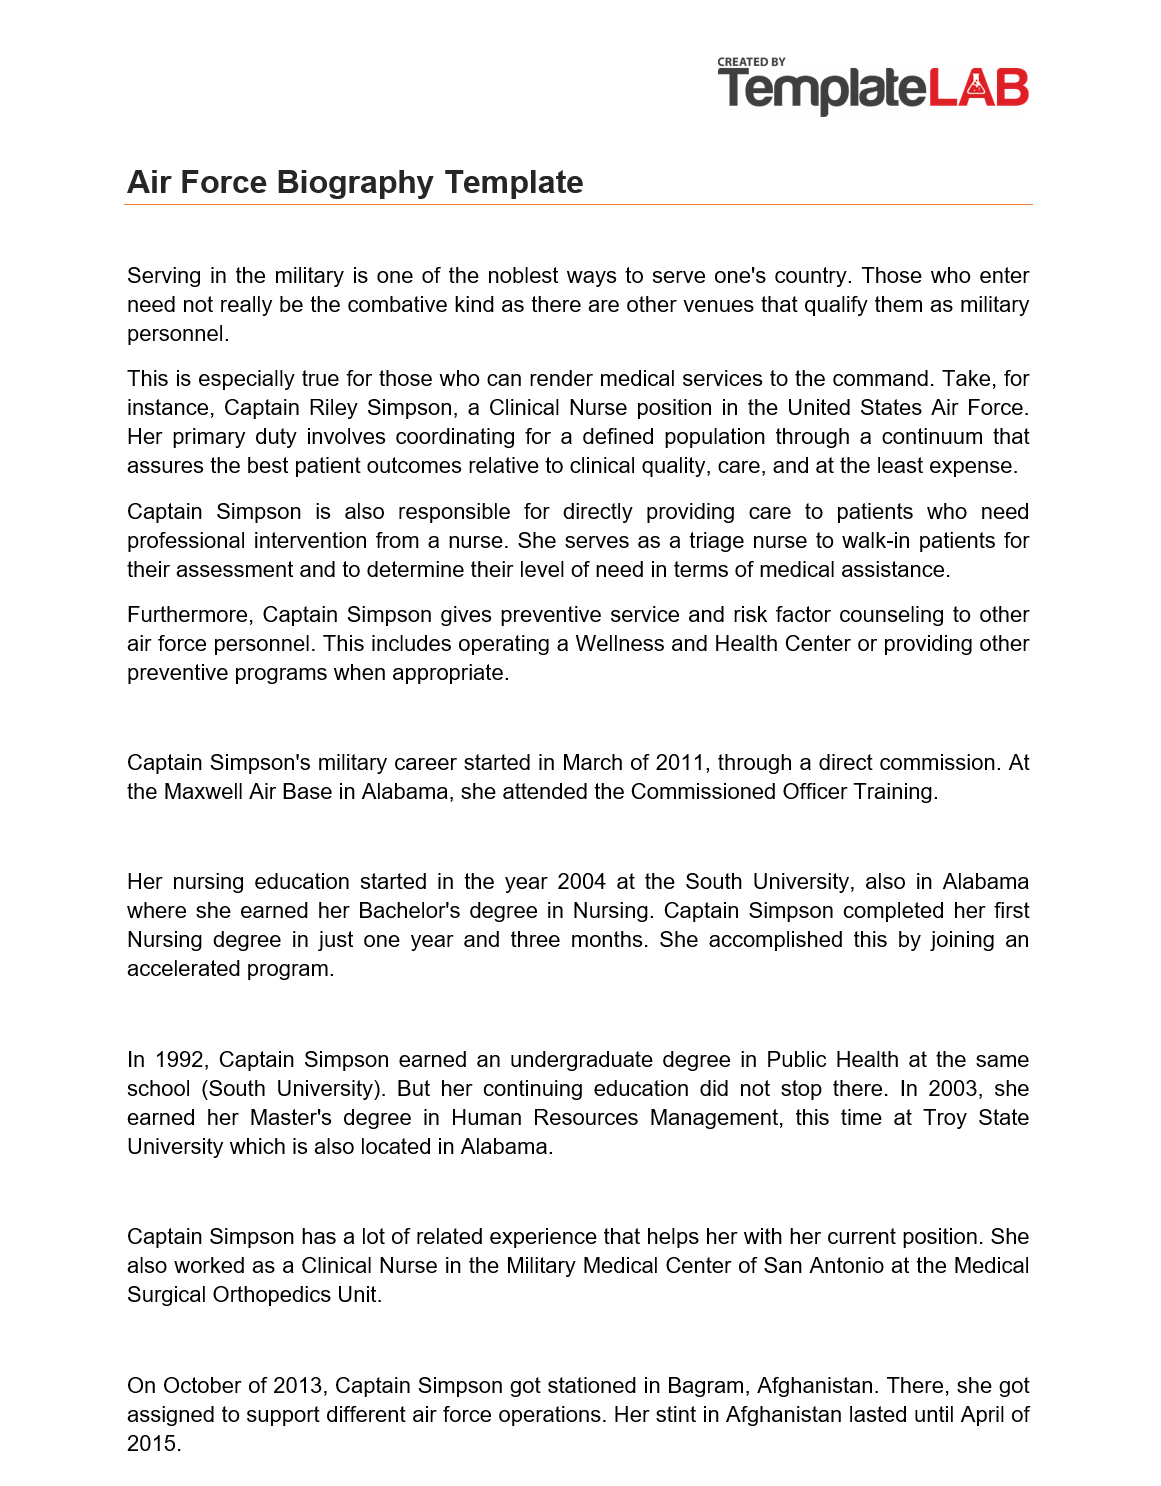 Free Air Force Biography template